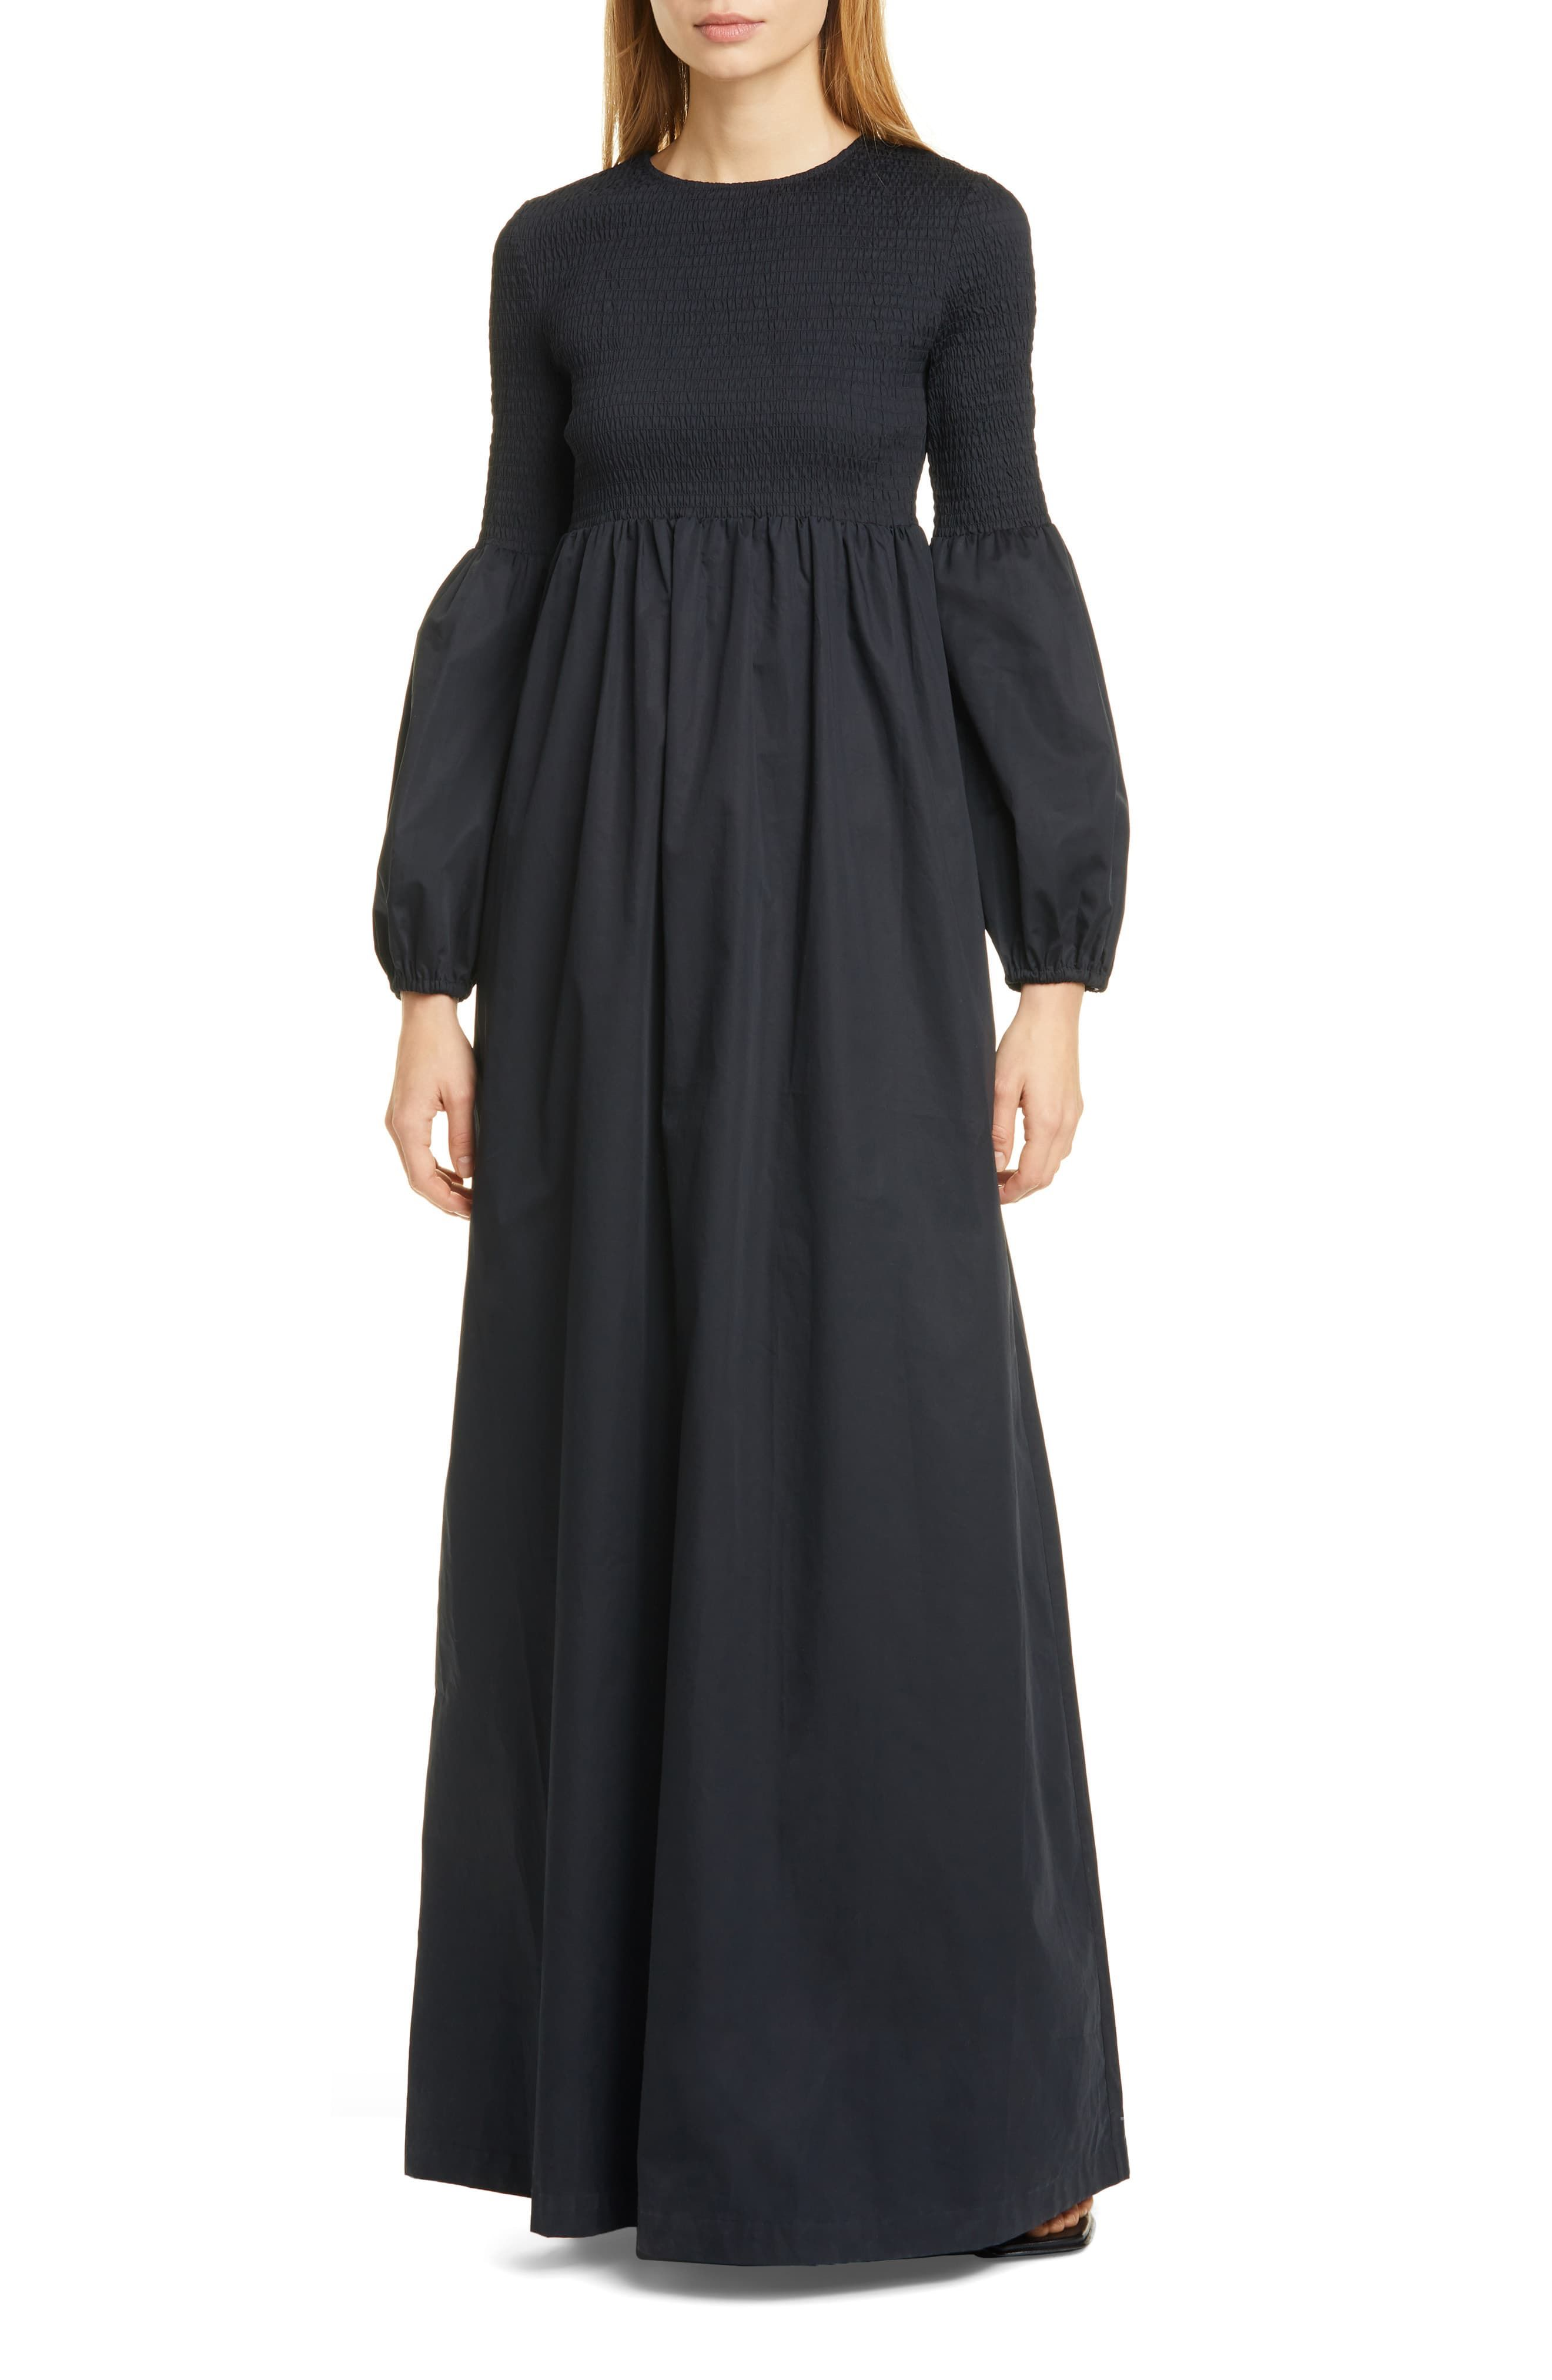 Rodebjer Sandy Smocked Bodice Long Sleeve Maxi Dress Available At Nordstrom Maxi Dress With Sleeves Long Sleeve Maxi Dress Silk Dress Long [ 4048 x 2640 Pixel ]